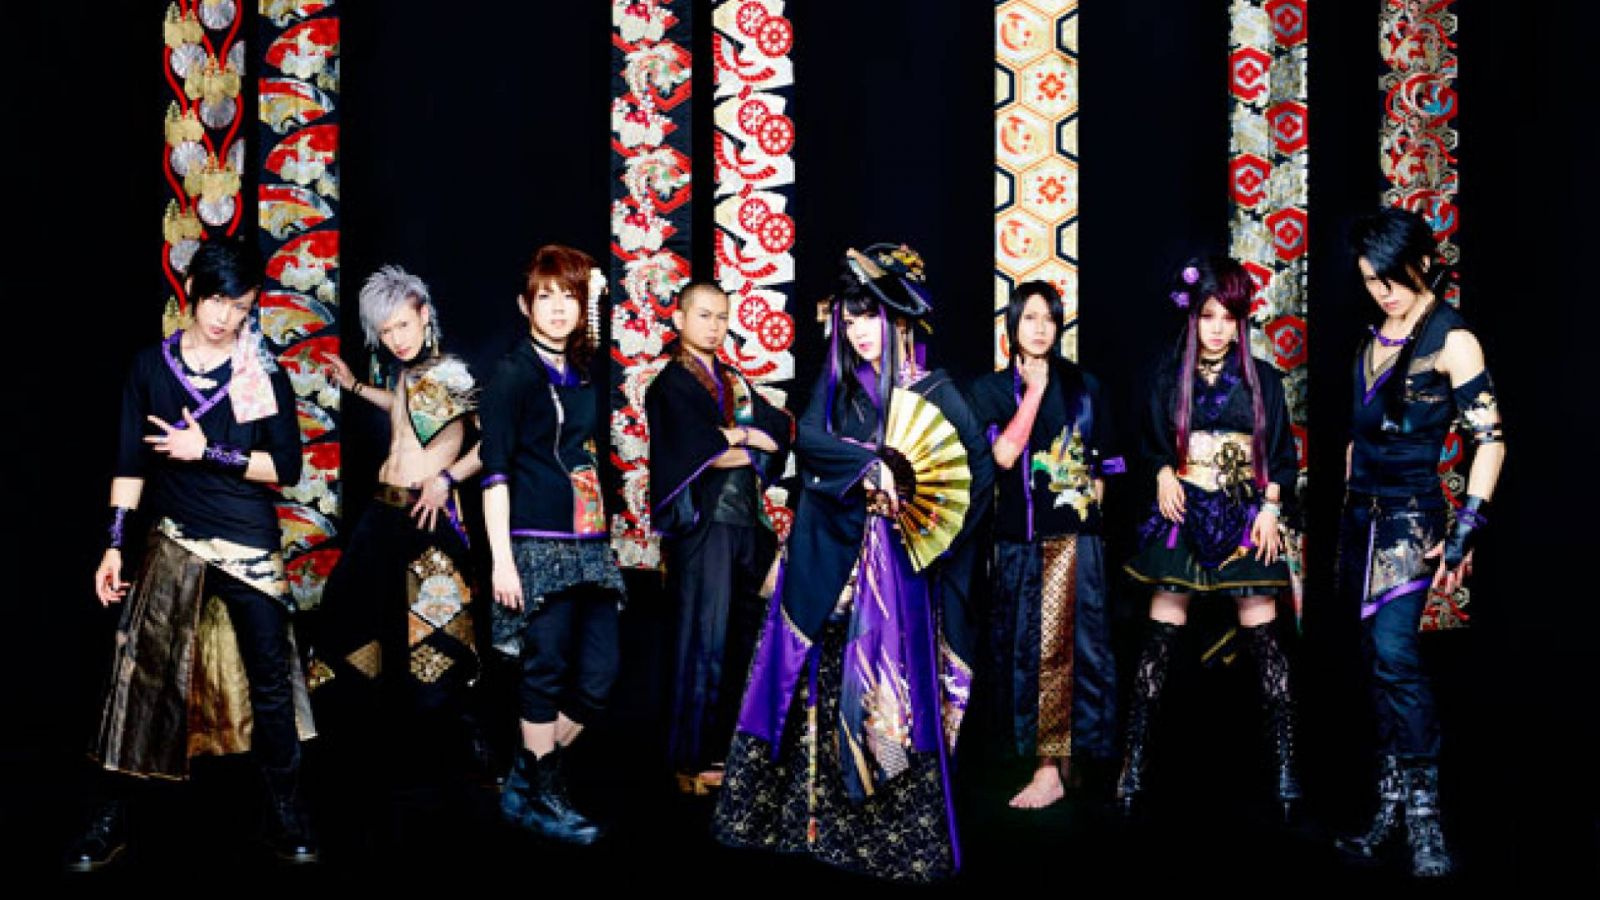 WagakkiBand to Perform at SXSW 2016 © 2015 Avex Music Creative Inc. Provided by Cool Japan Music, Inc.